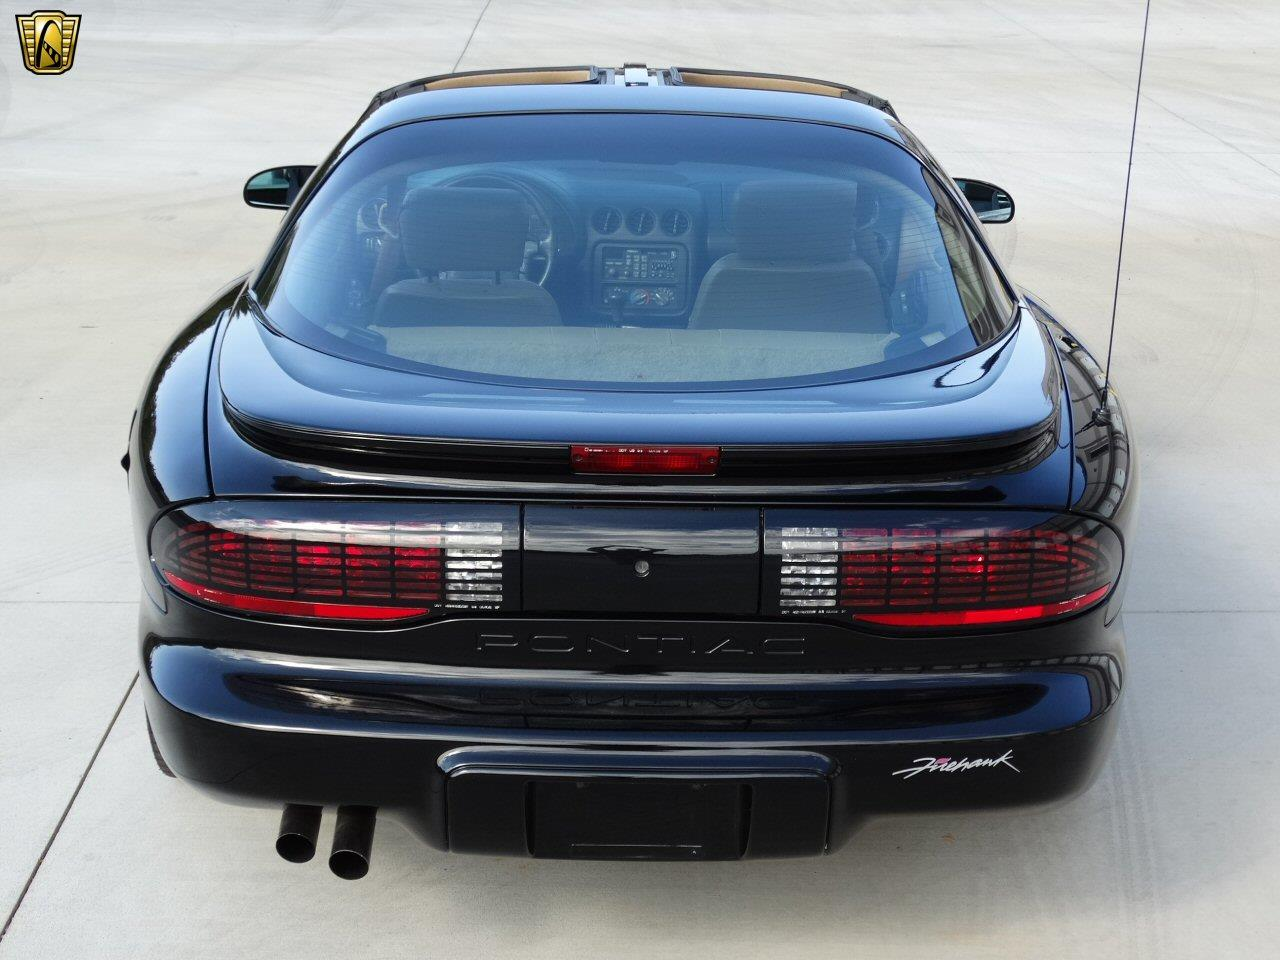 Large Picture of '94 Pontiac Firebird - $20,995.00 - KF4C